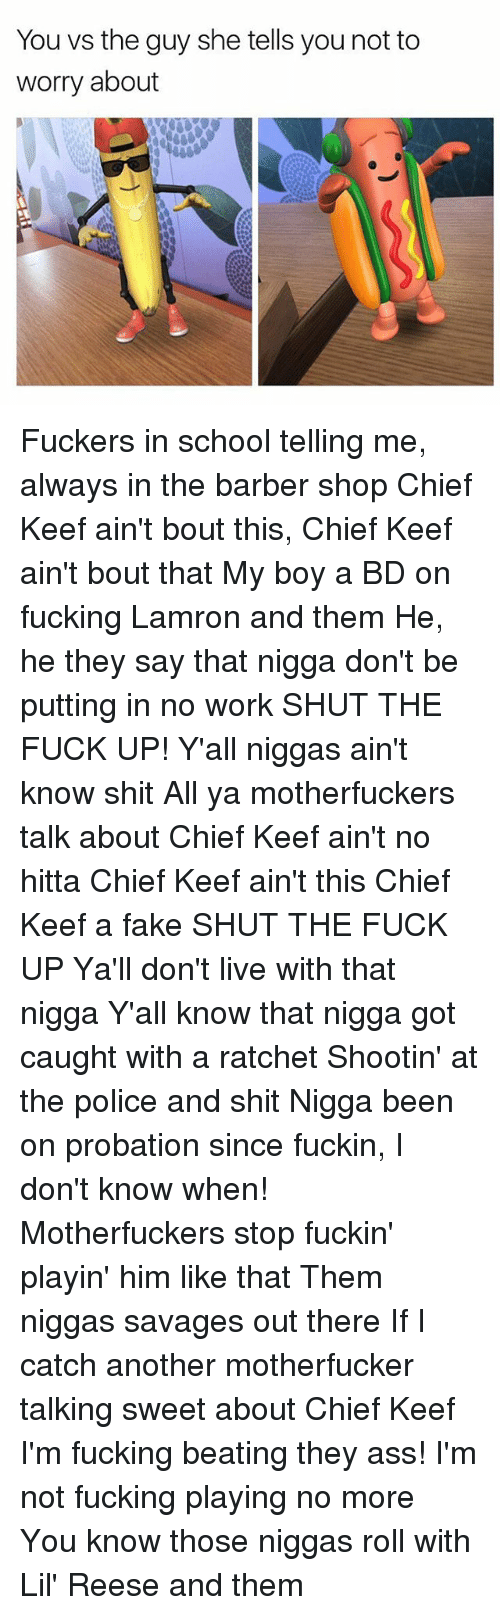 Keefs: You vs the guy she tells you not to  worry about Fuckers in school telling me, always in the barber shop Chief Keef ain't bout this, Chief Keef ain't bout that My boy a BD on fucking Lamron and them He, he they say that nigga don't be putting in no work SHUT THE FUCK UP! Y'all niggas ain't know shit All ya motherfuckers talk about Chief Keef ain't no hitta Chief Keef ain't this Chief Keef a fake SHUT THE FUCK UP Ya'll don't live with that nigga Y'all know that nigga got caught with a ratchet Shootin' at the police and shit Nigga been on probation since fuckin, I don't know when! Motherfuckers stop fuckin' playin' him like that Them niggas savages out there If I catch another motherfucker talking sweet about Chief Keef I'm fucking beating they ass! I'm not fucking playing no more You know those niggas roll with Lil' Reese and them